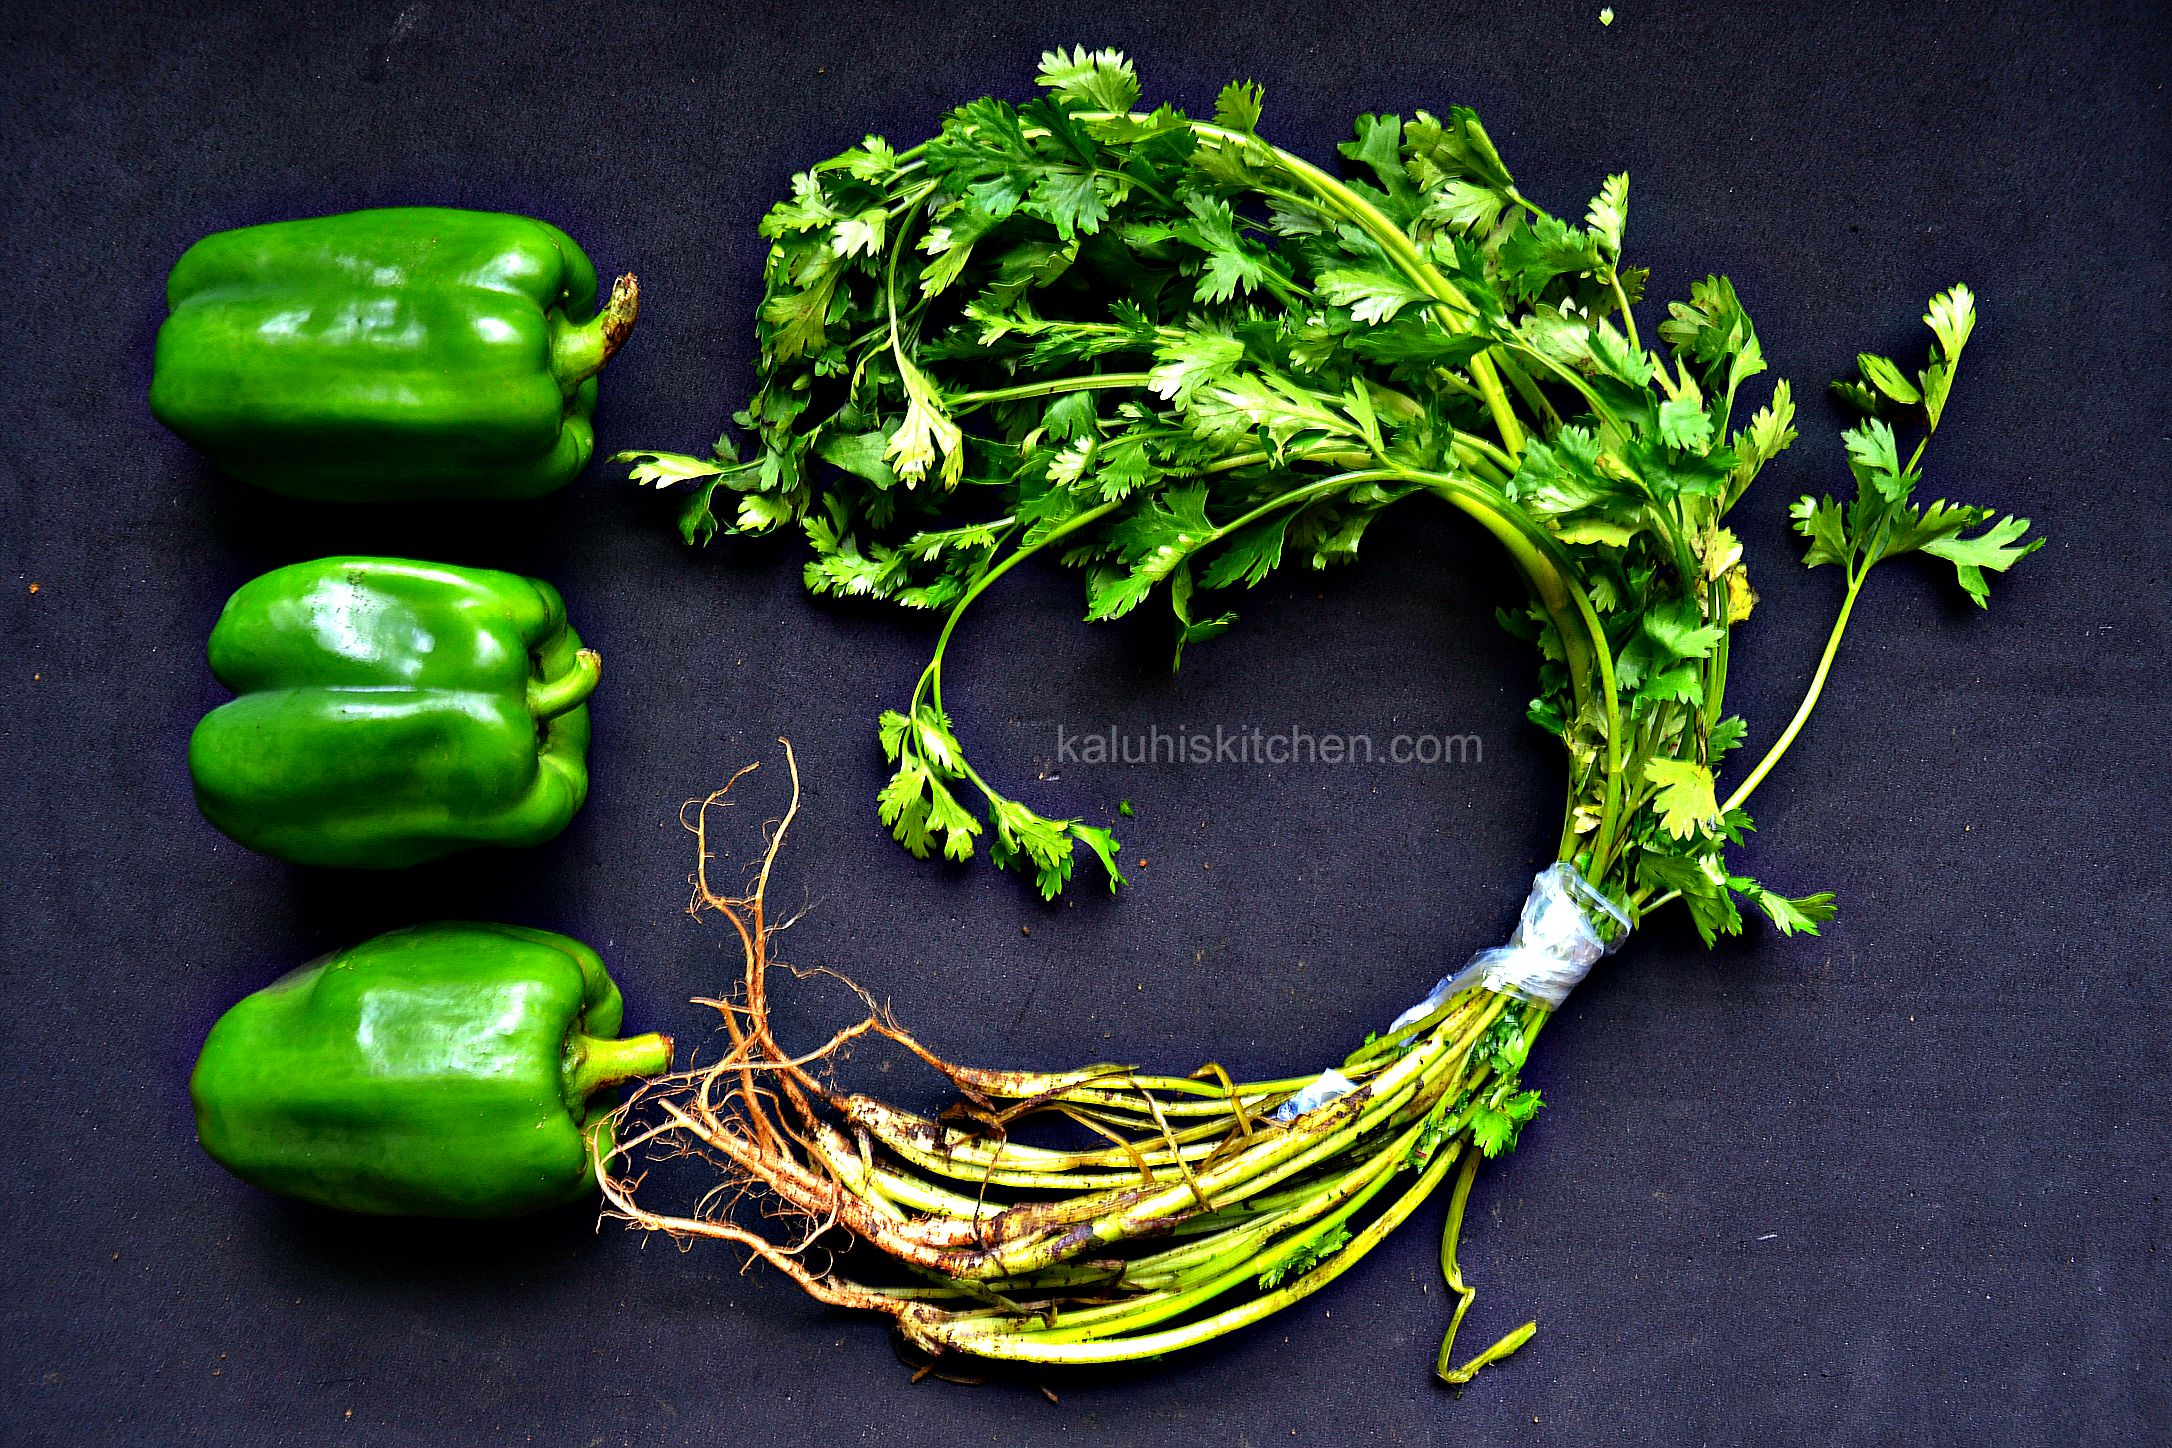 green bell pepper add savoriness to a dish while coriander add freshness and color_kaluhiskitchen.com_best kenyan food blog